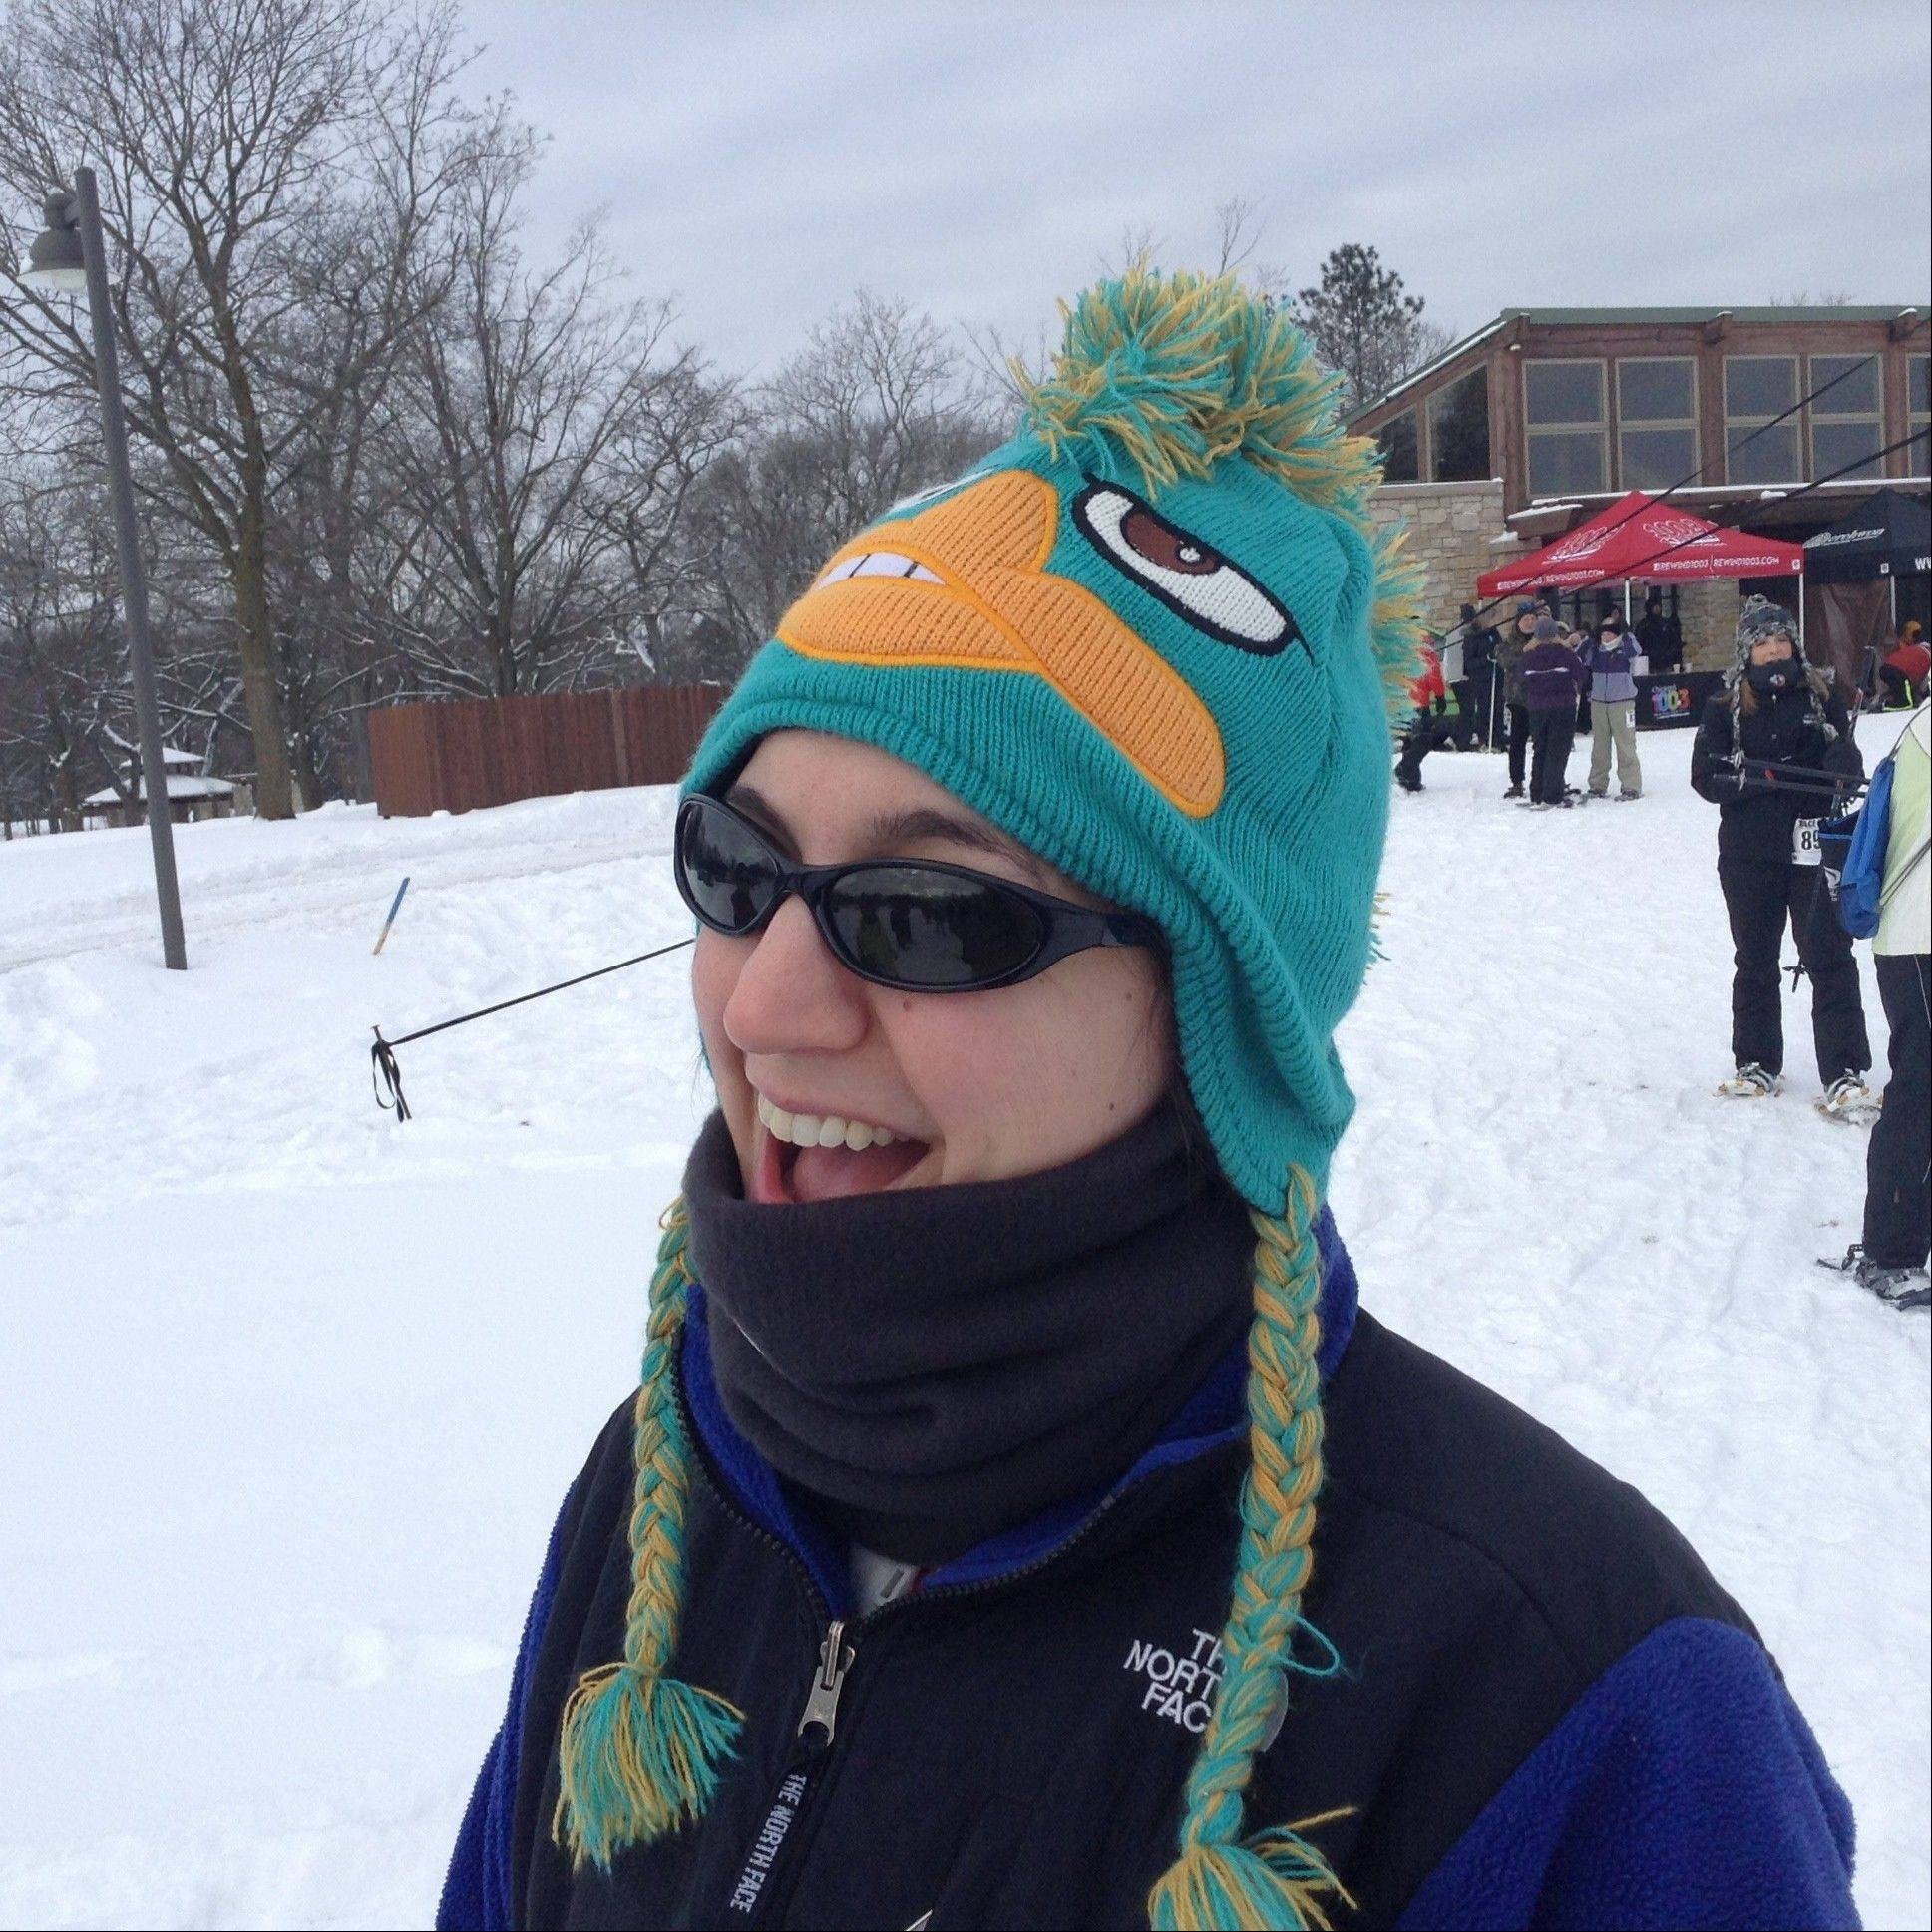 Casey Kozlowski wore a colorful Perry the Platypus hat to keep her head warm during Sunday's Frozen Zucchini Snowshoe Adventure in Barrington. The event is a fundraiser for Smart Farm, a local organization that promotes sustainable gardening and donates produce to food pantries.